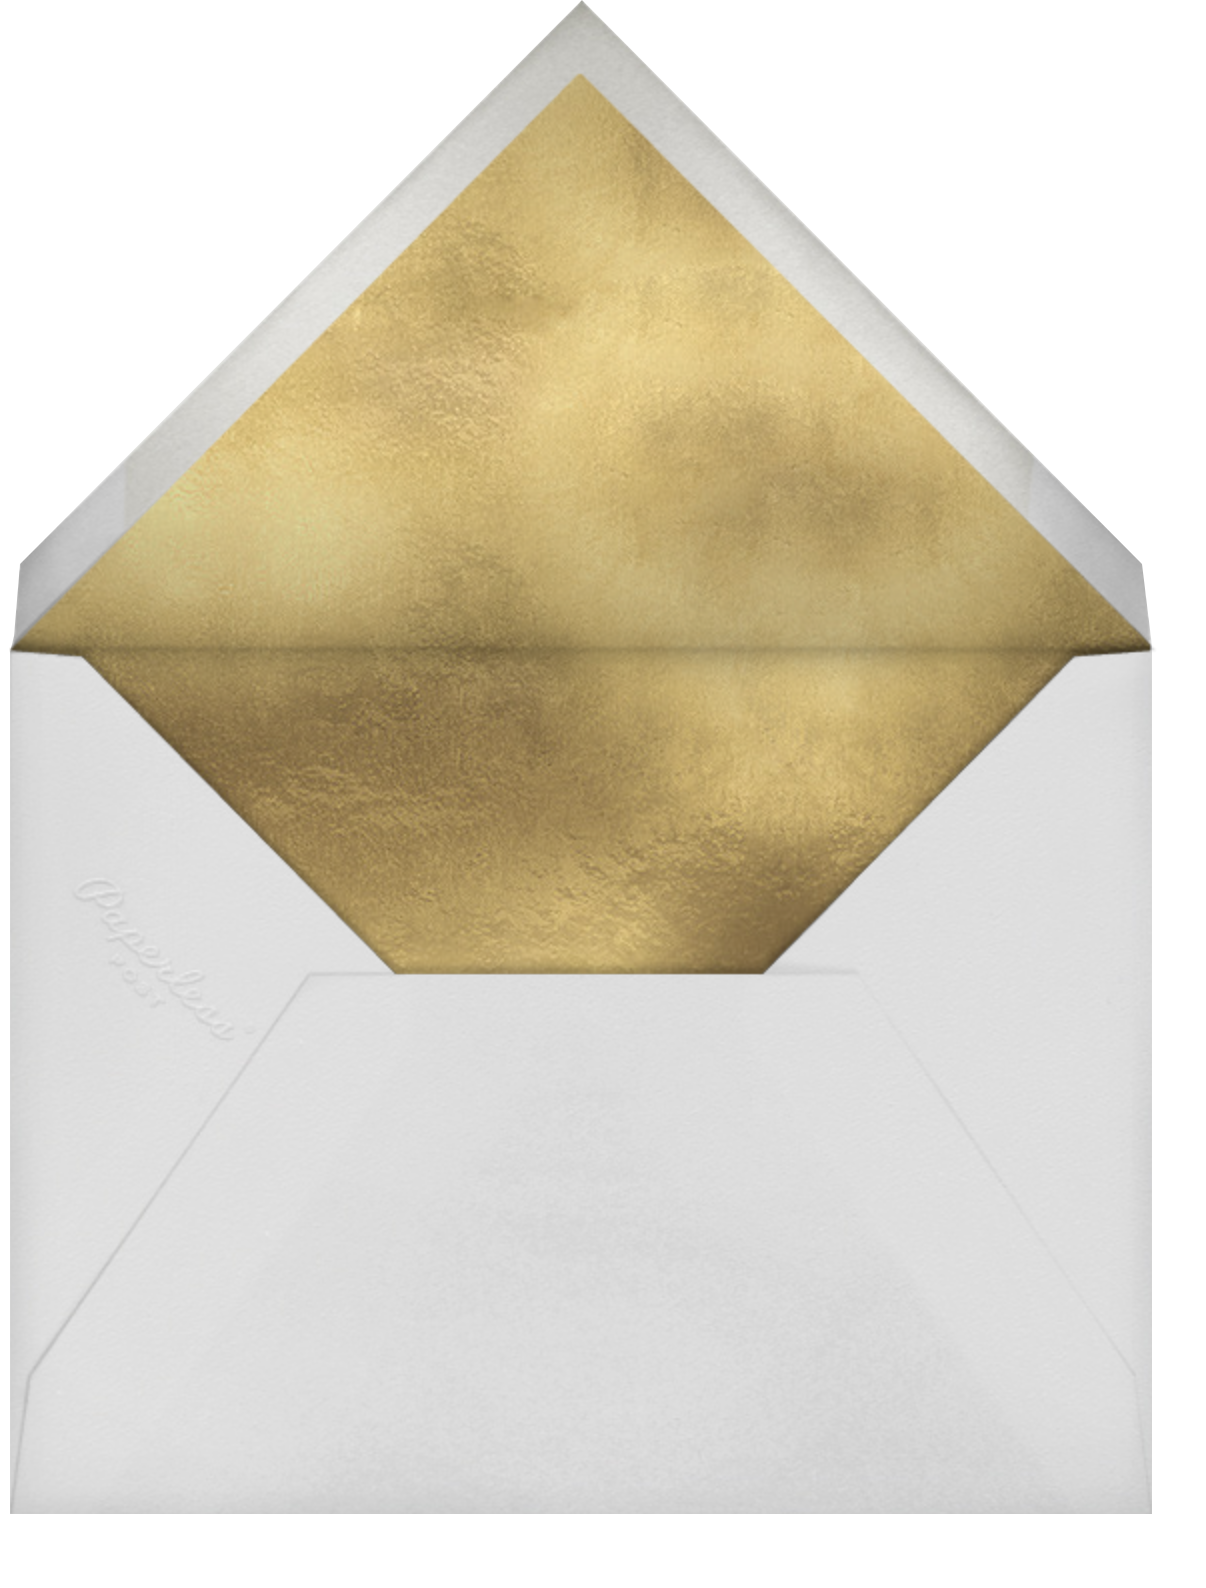 Save Our Date - Paper Source - Gold and metallic - envelope back